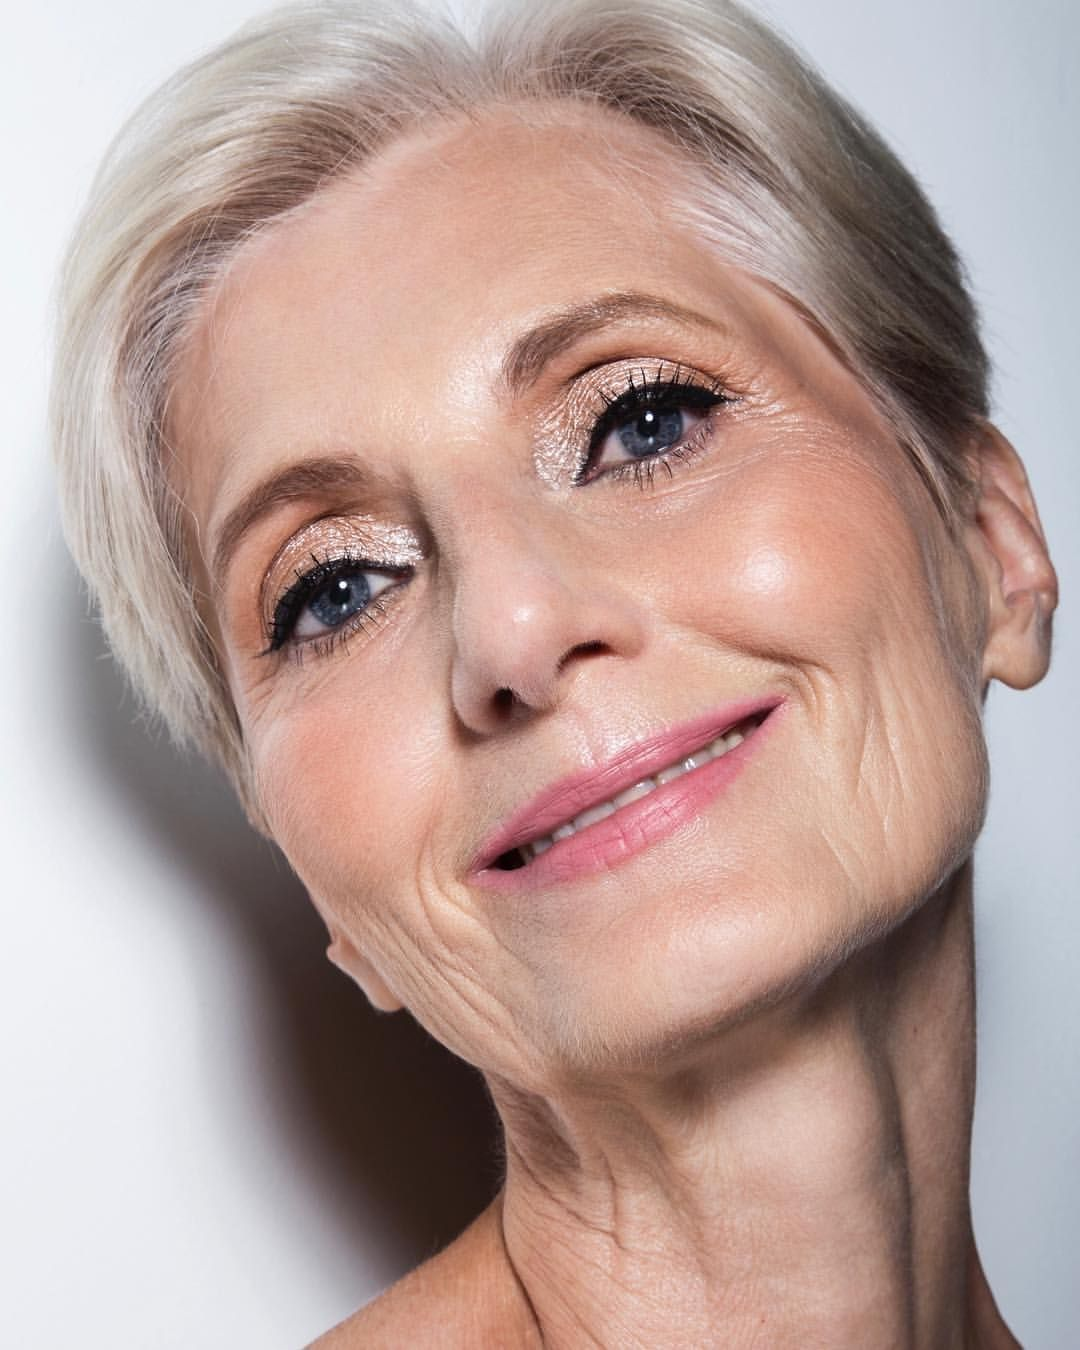 Stars Over 50 Beauty Contract, Spokesperson Deals in